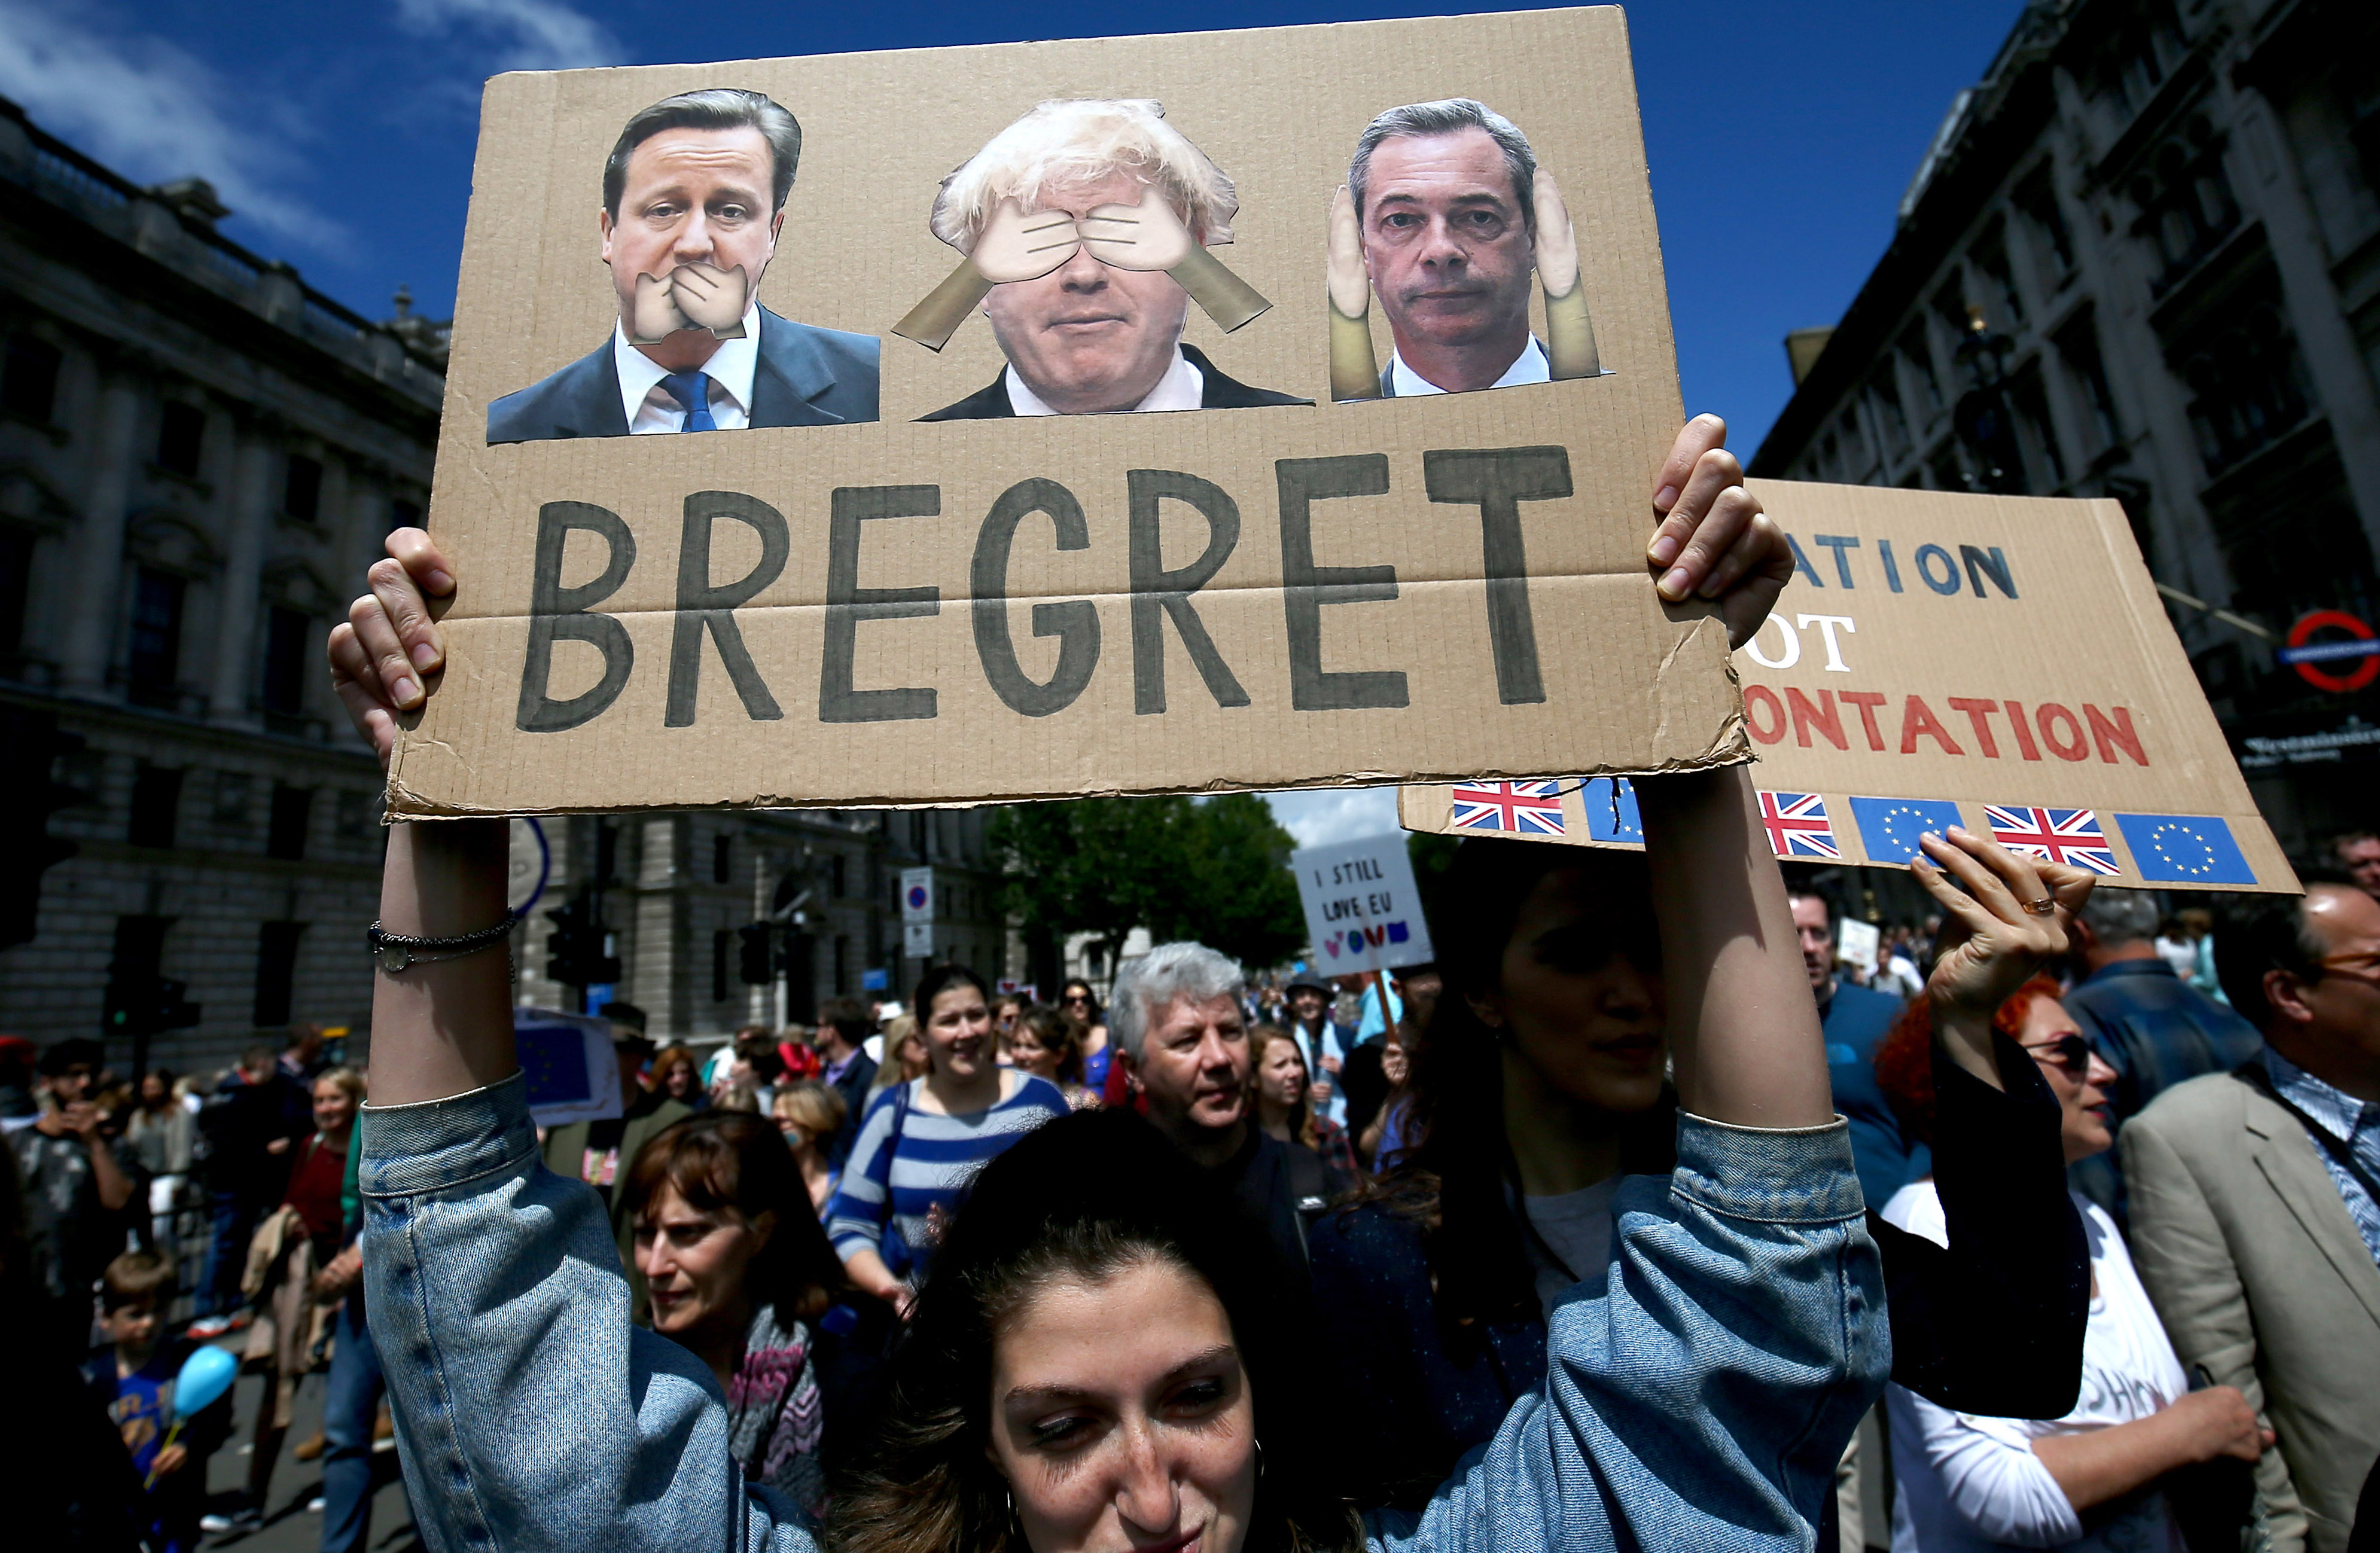 People hold banners during a 'March for Europe' demonstration against Britain's decision to leave the European Union, in central London, Britain, July 2, 2016.